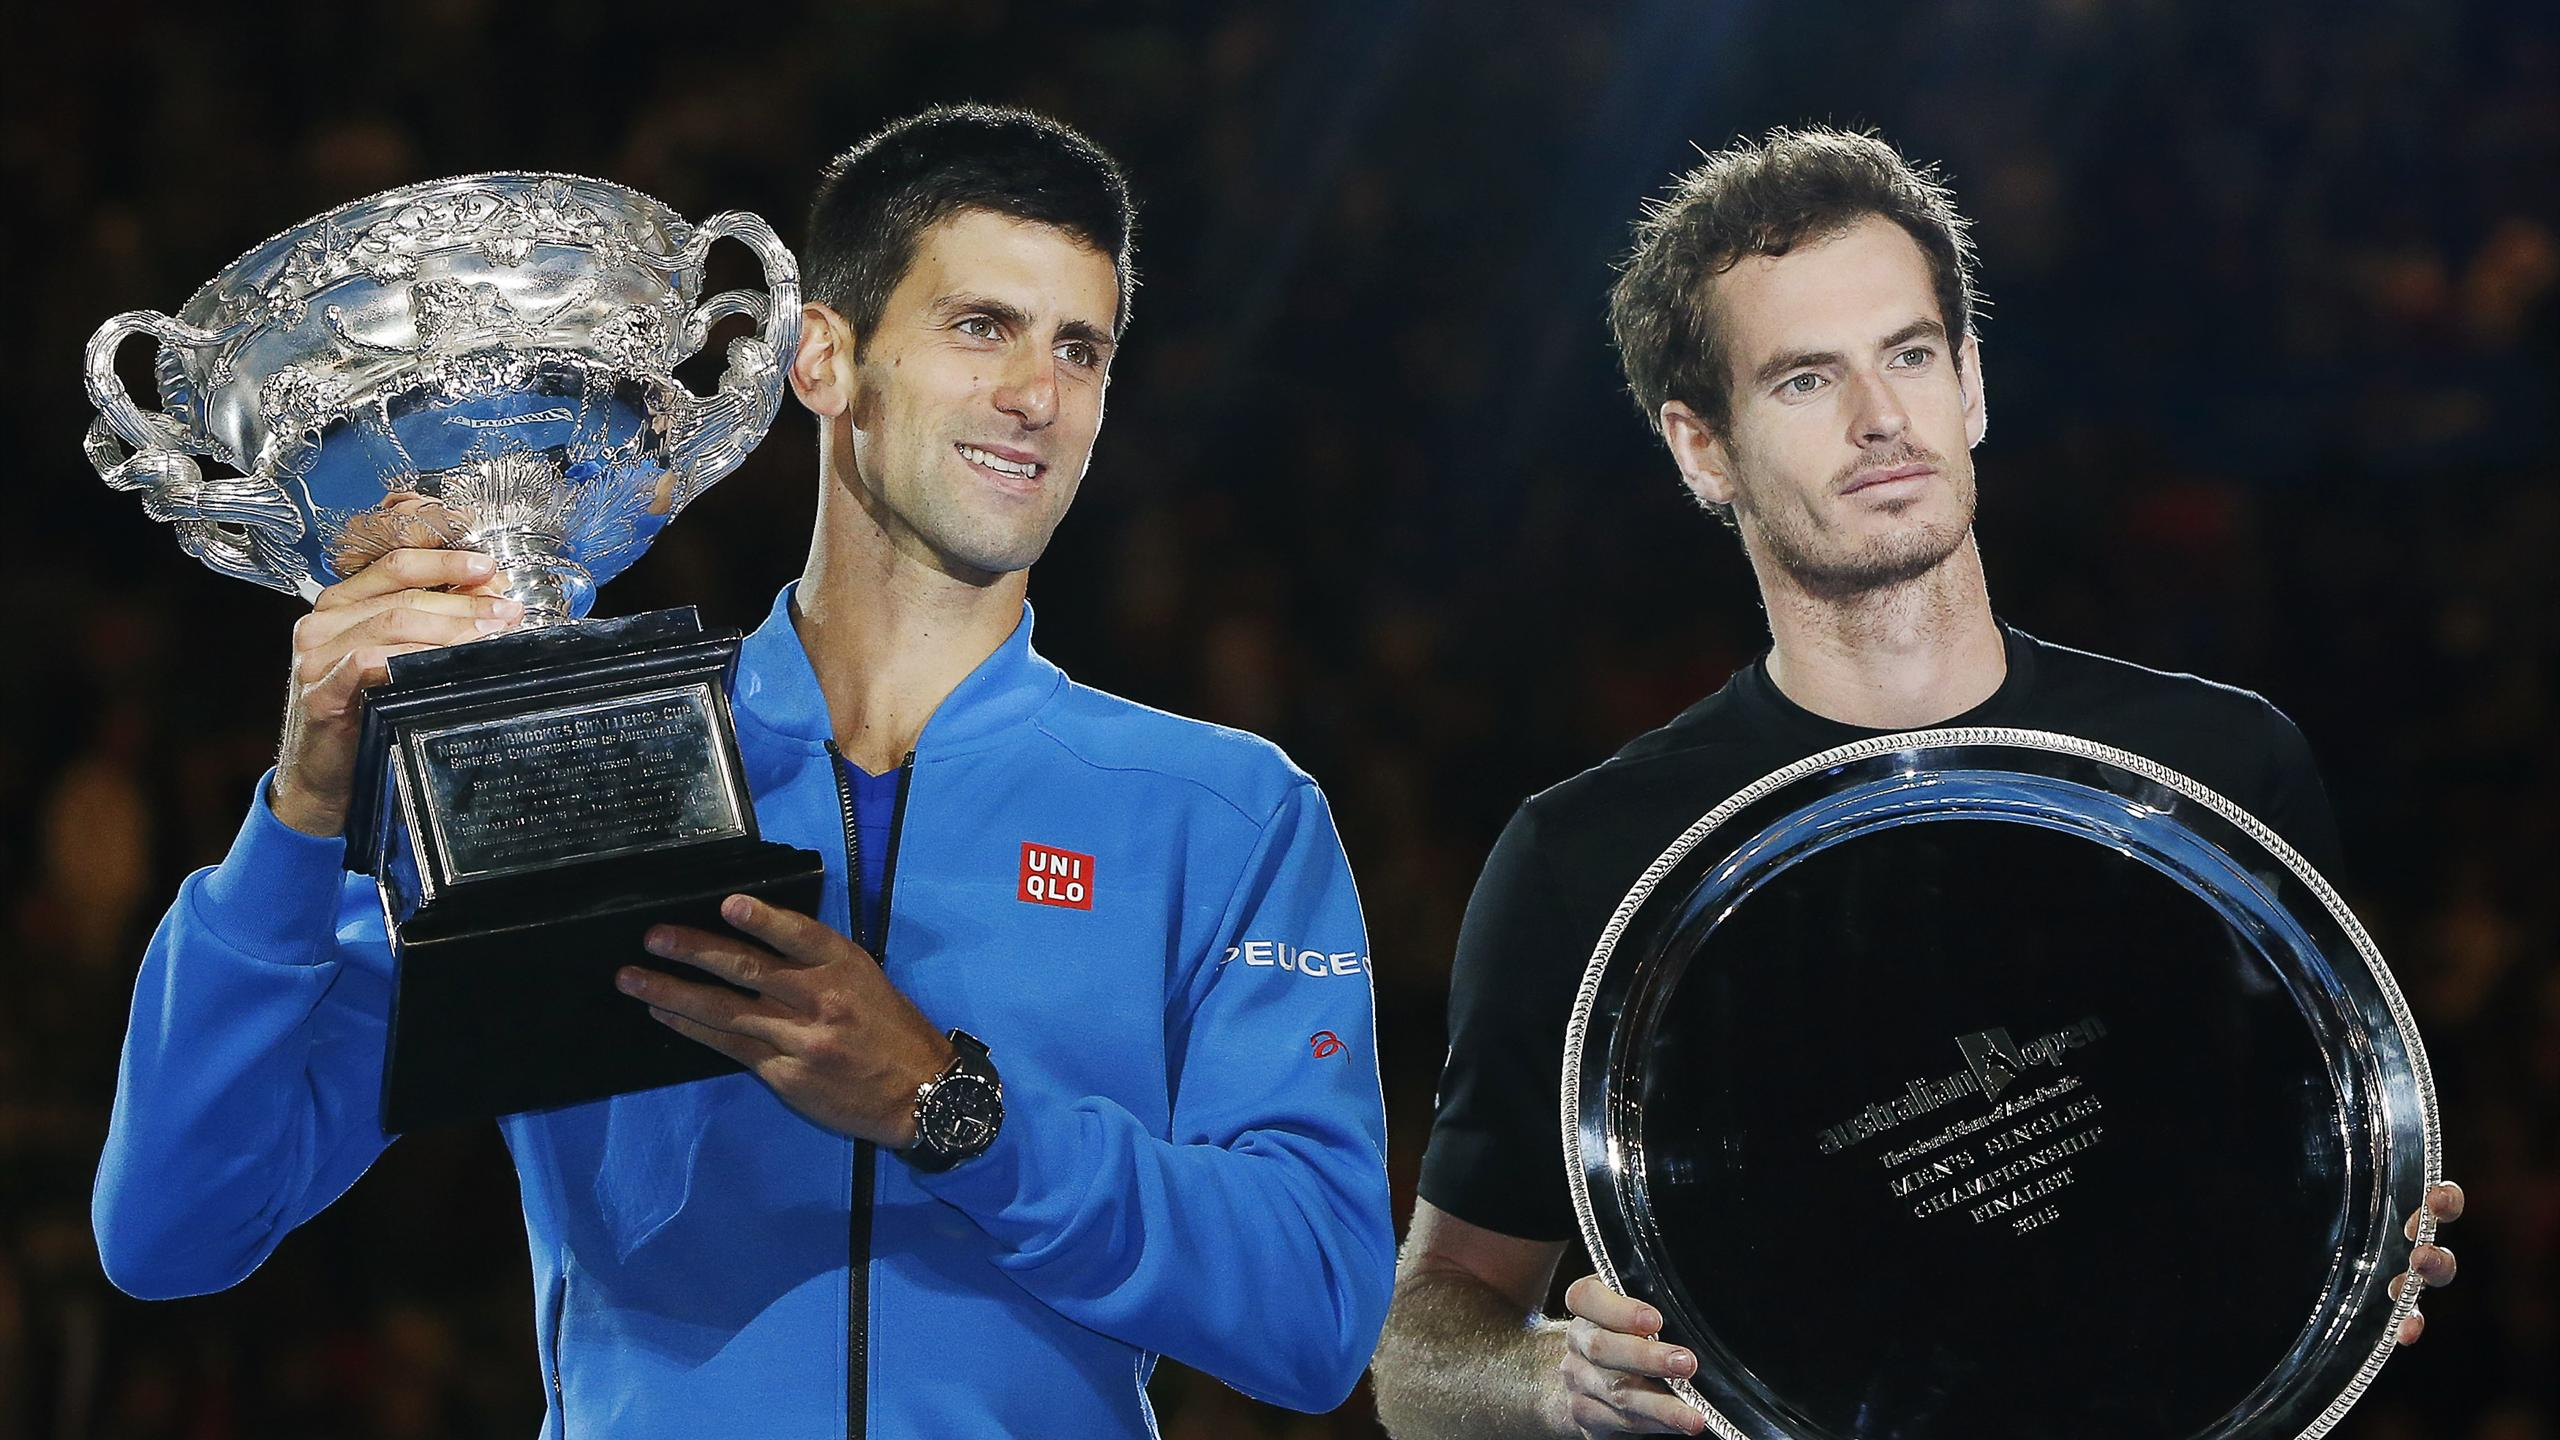 Novak Djokovic (L) of Serbia holds up his trophy next to runner-up Andy Murray of Britain after winning their men's singles final match at the 2015 Australian Open in Melbourne